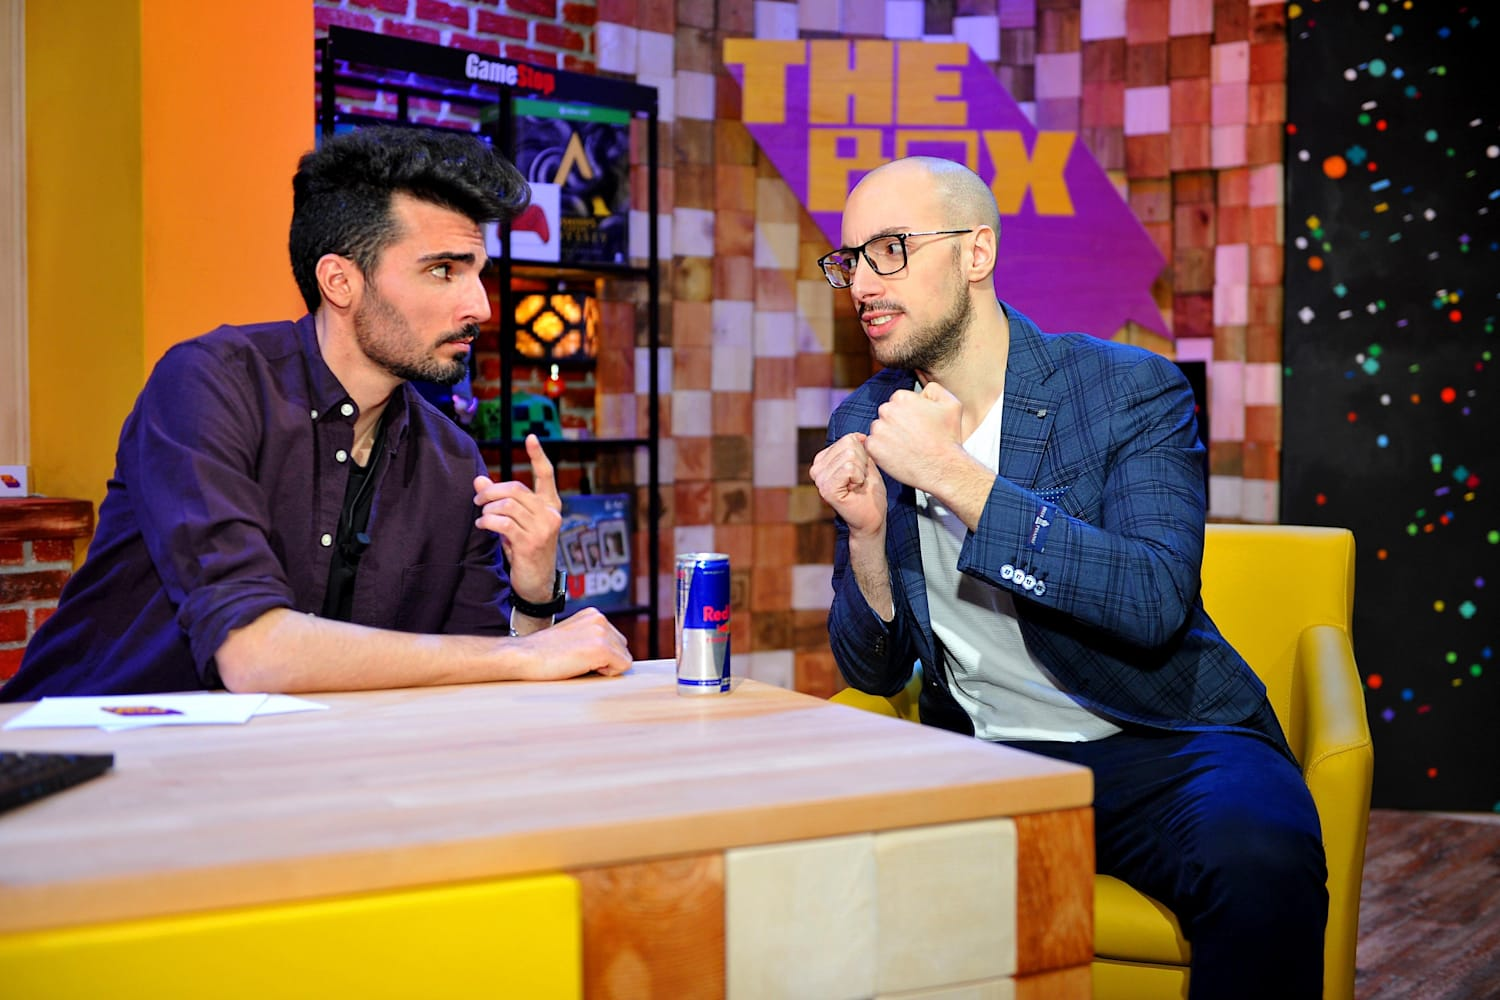 The Box: Predator partner del primo late show su Twitch